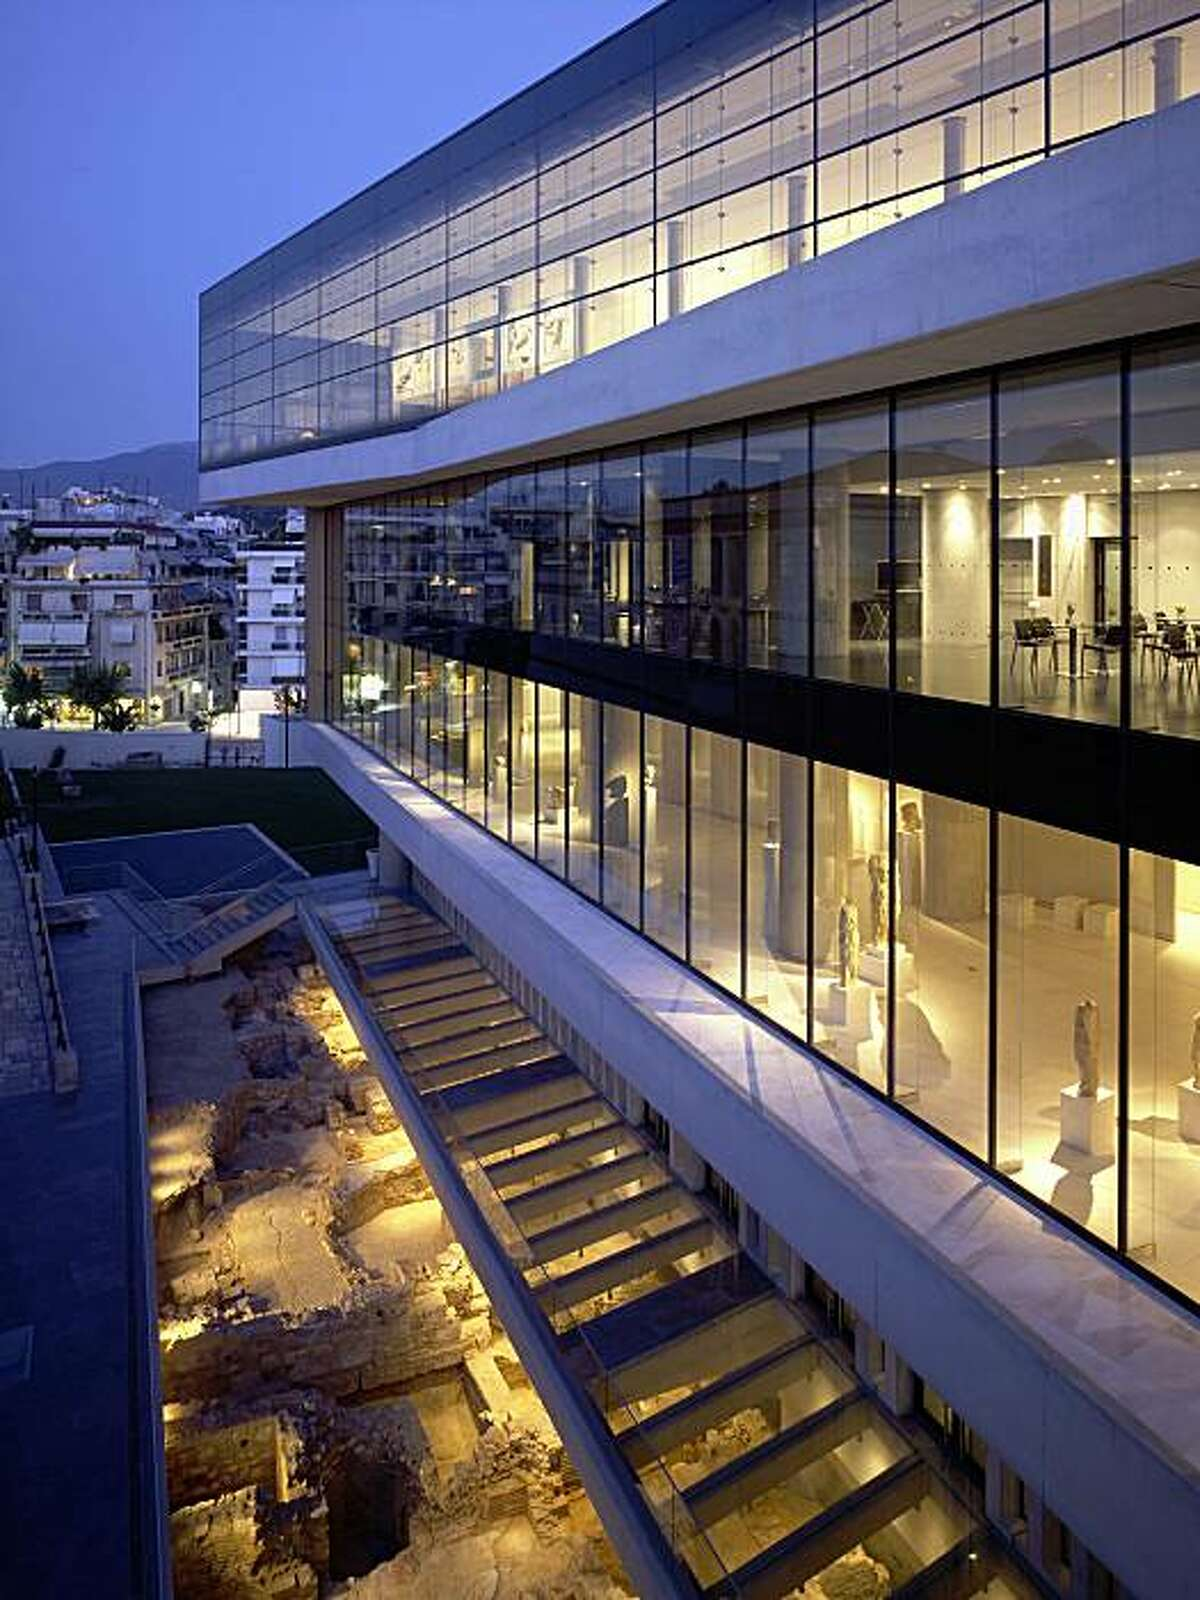 Exterior view of the of the New Acropolis Museum, Athens, Greece, designed by Bernard Tschumi, showing preserved 4th century A.D. ruins beneath the building.